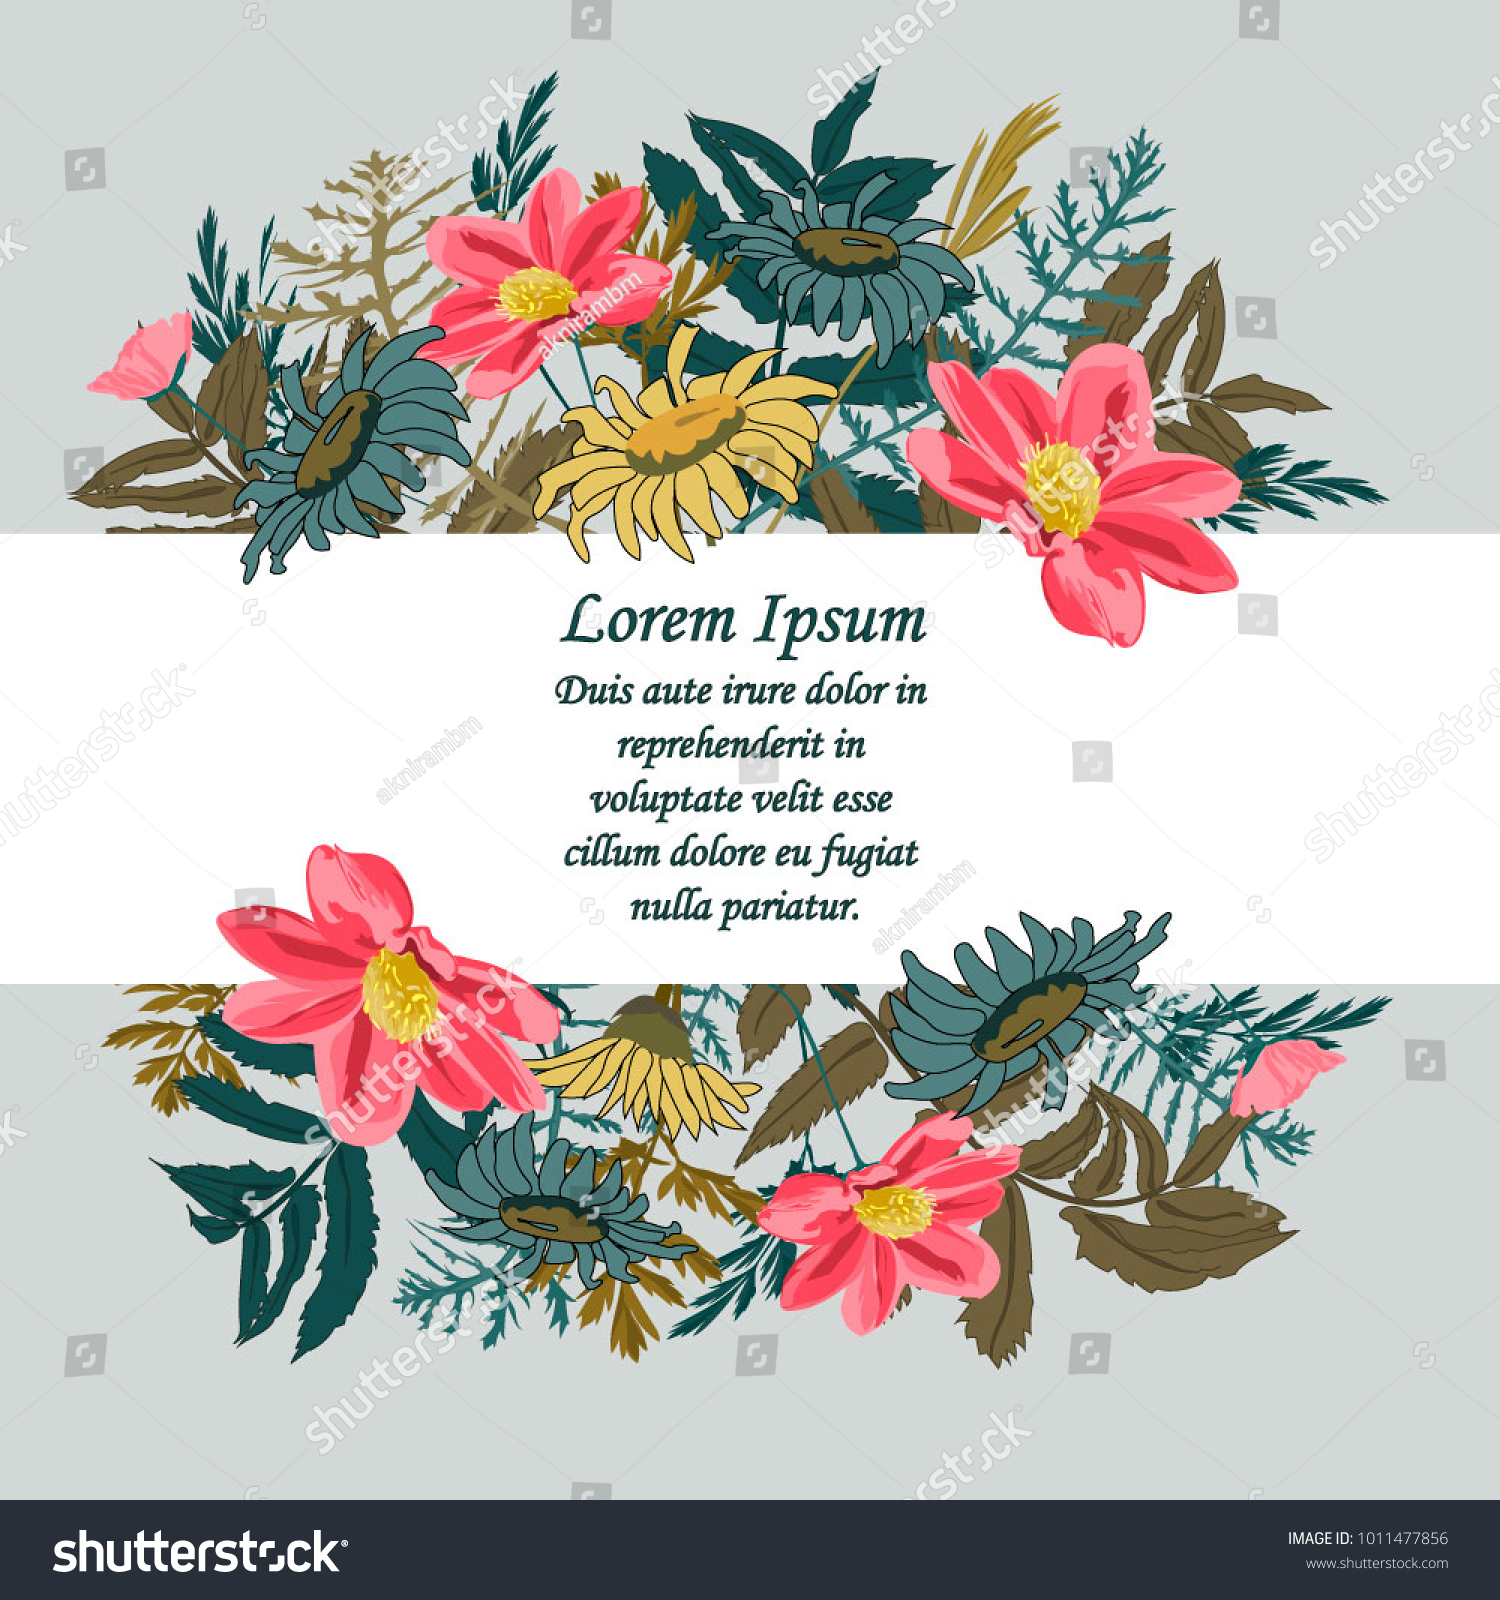 Vector illustration beautiful floral frame colorful stock vector vector illustration of a beautiful floral frame with colorful wild flowers for birthday wedding izmirmasajfo